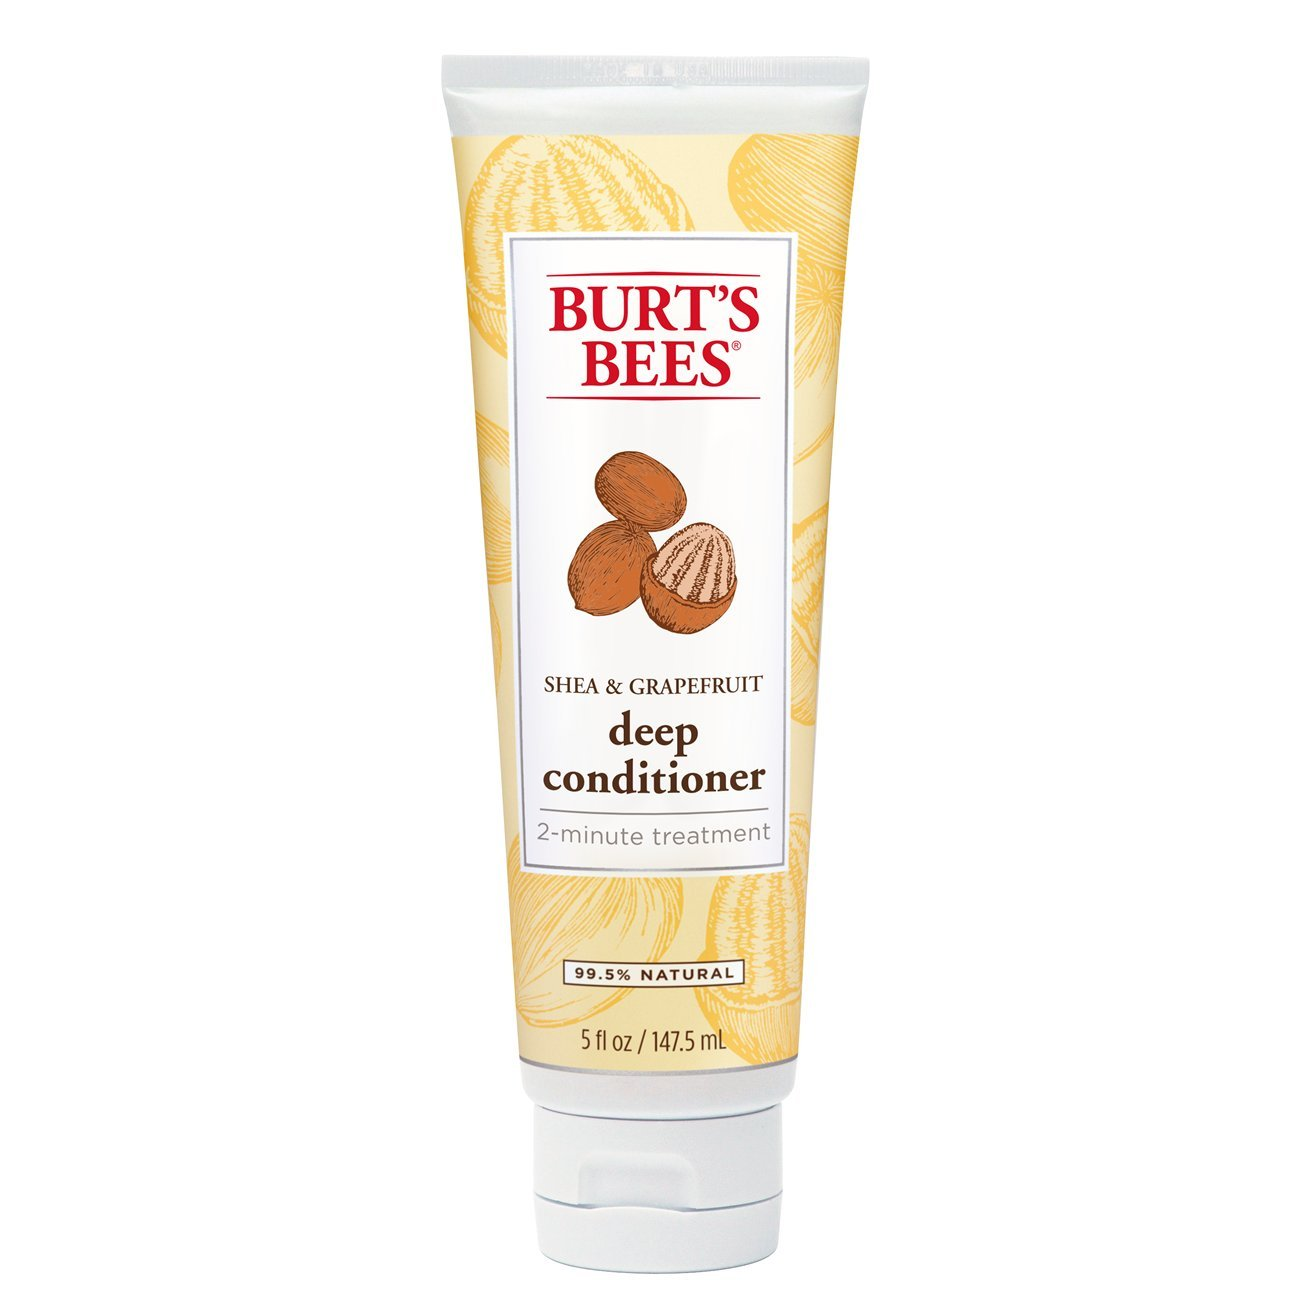 Burt's Bees Hair Repair Shea and Grapefruit Deep Conditioner, Sulfate-Free Conditioner - 5 Ounce Bottle Burt' s Bees hbf-jjj-omgh-mh3180